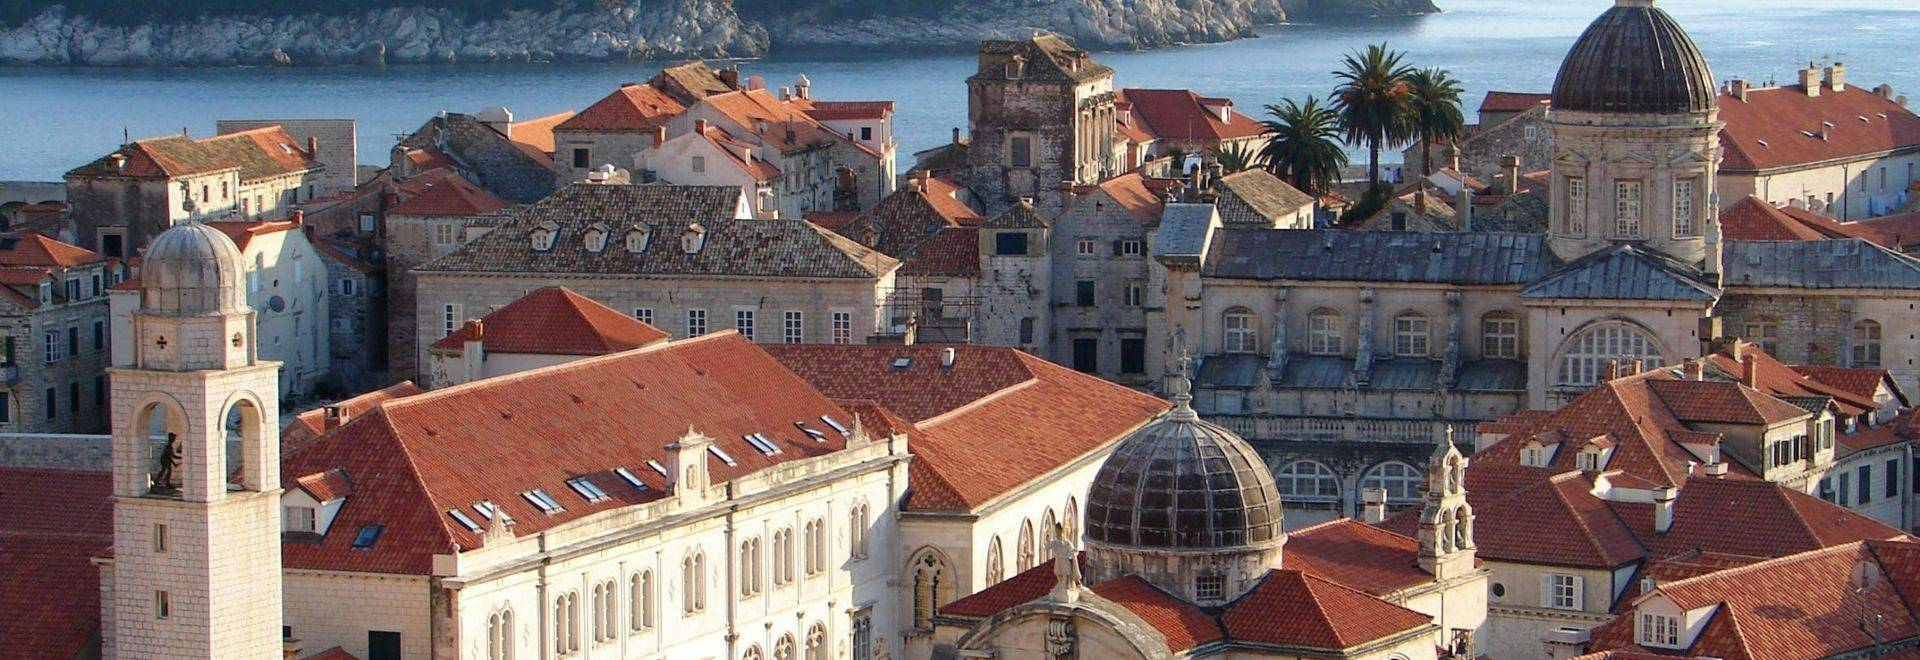 Adriatic Odyssey Dubrovnik Old City, Croatia